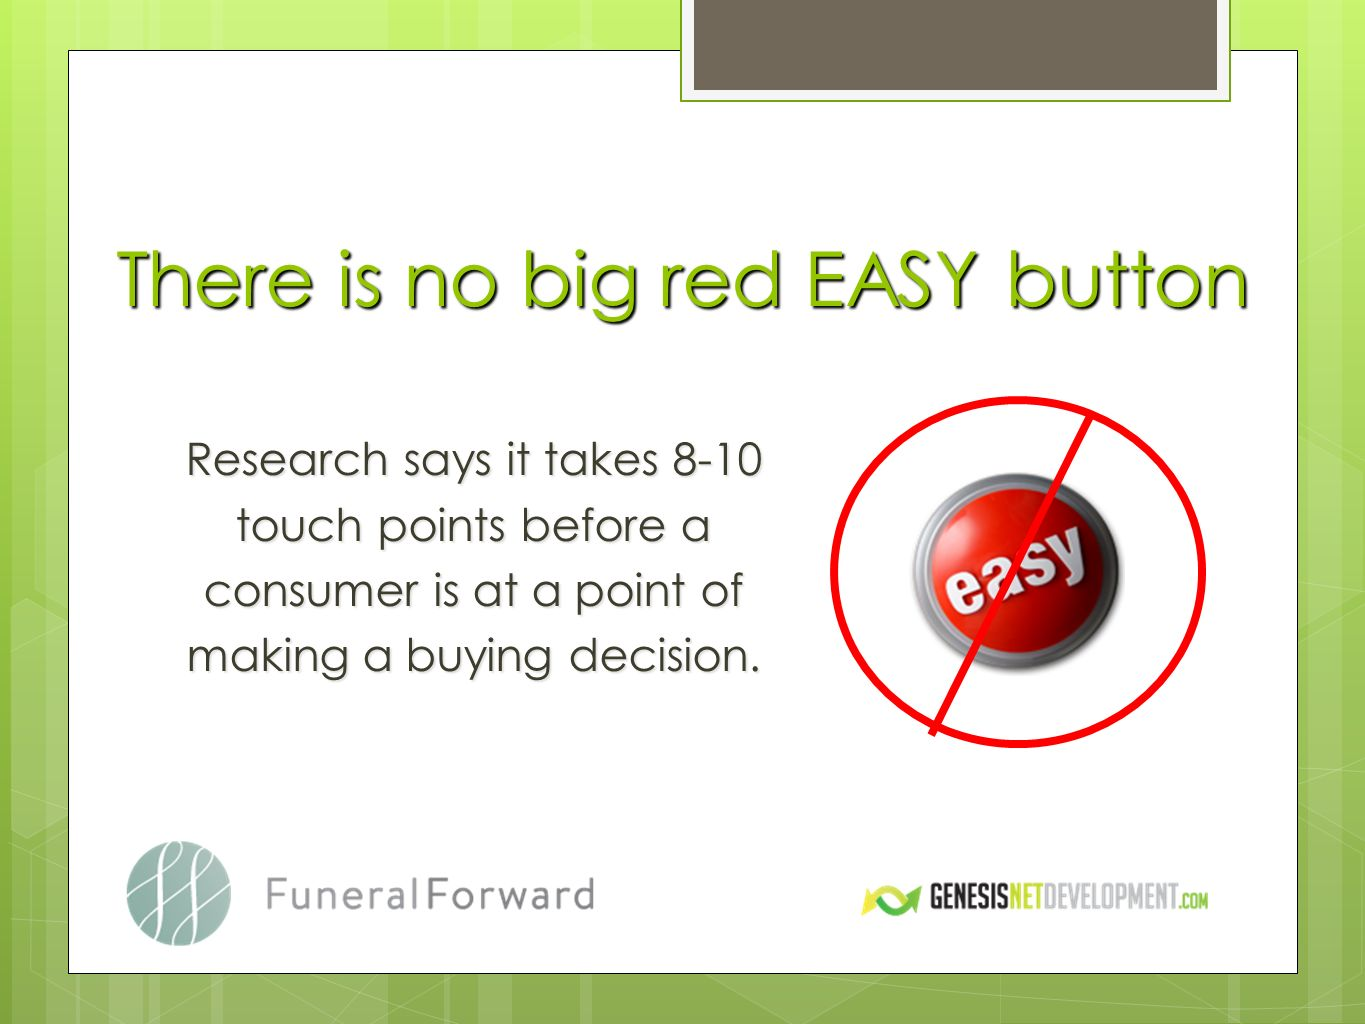 Research says it takes 8-10 touch points before a consumer is at a point of making a buying decision.